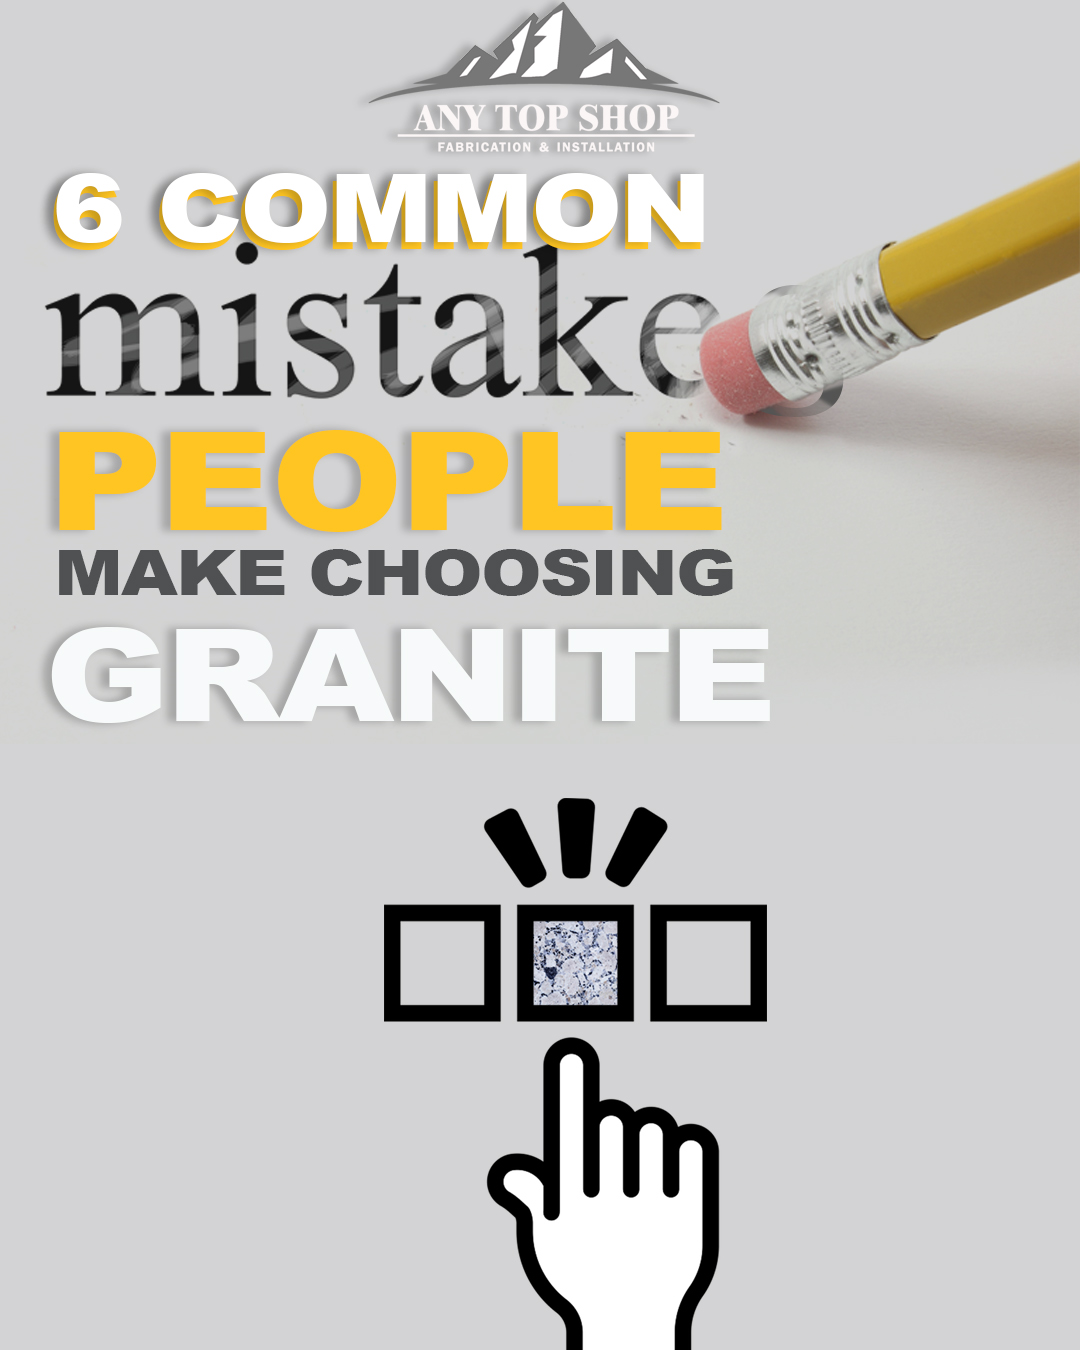 6 Common Mistakes People Make Choosing Granite